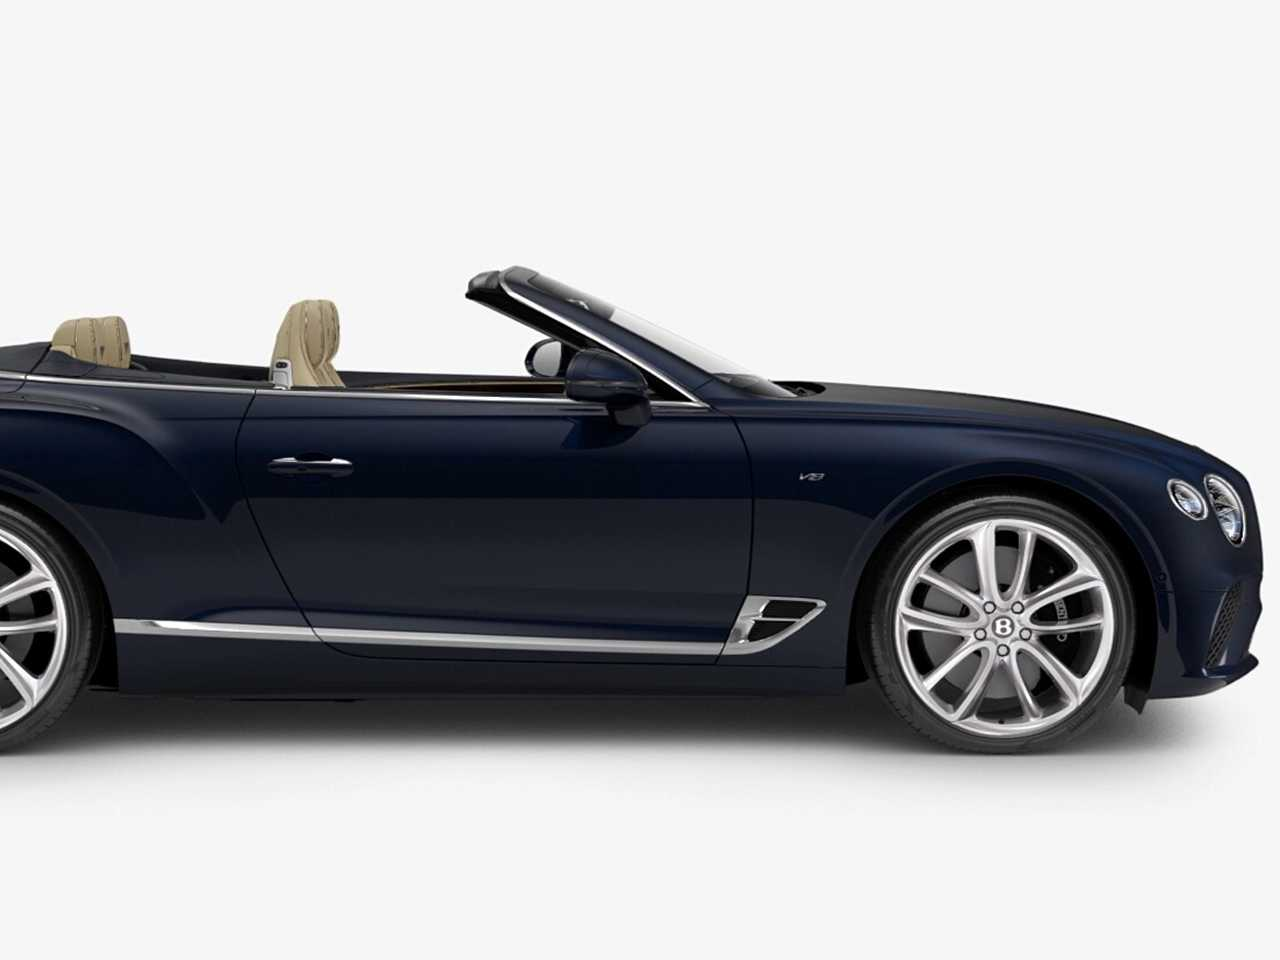 Bentley GTC Cab car for hire